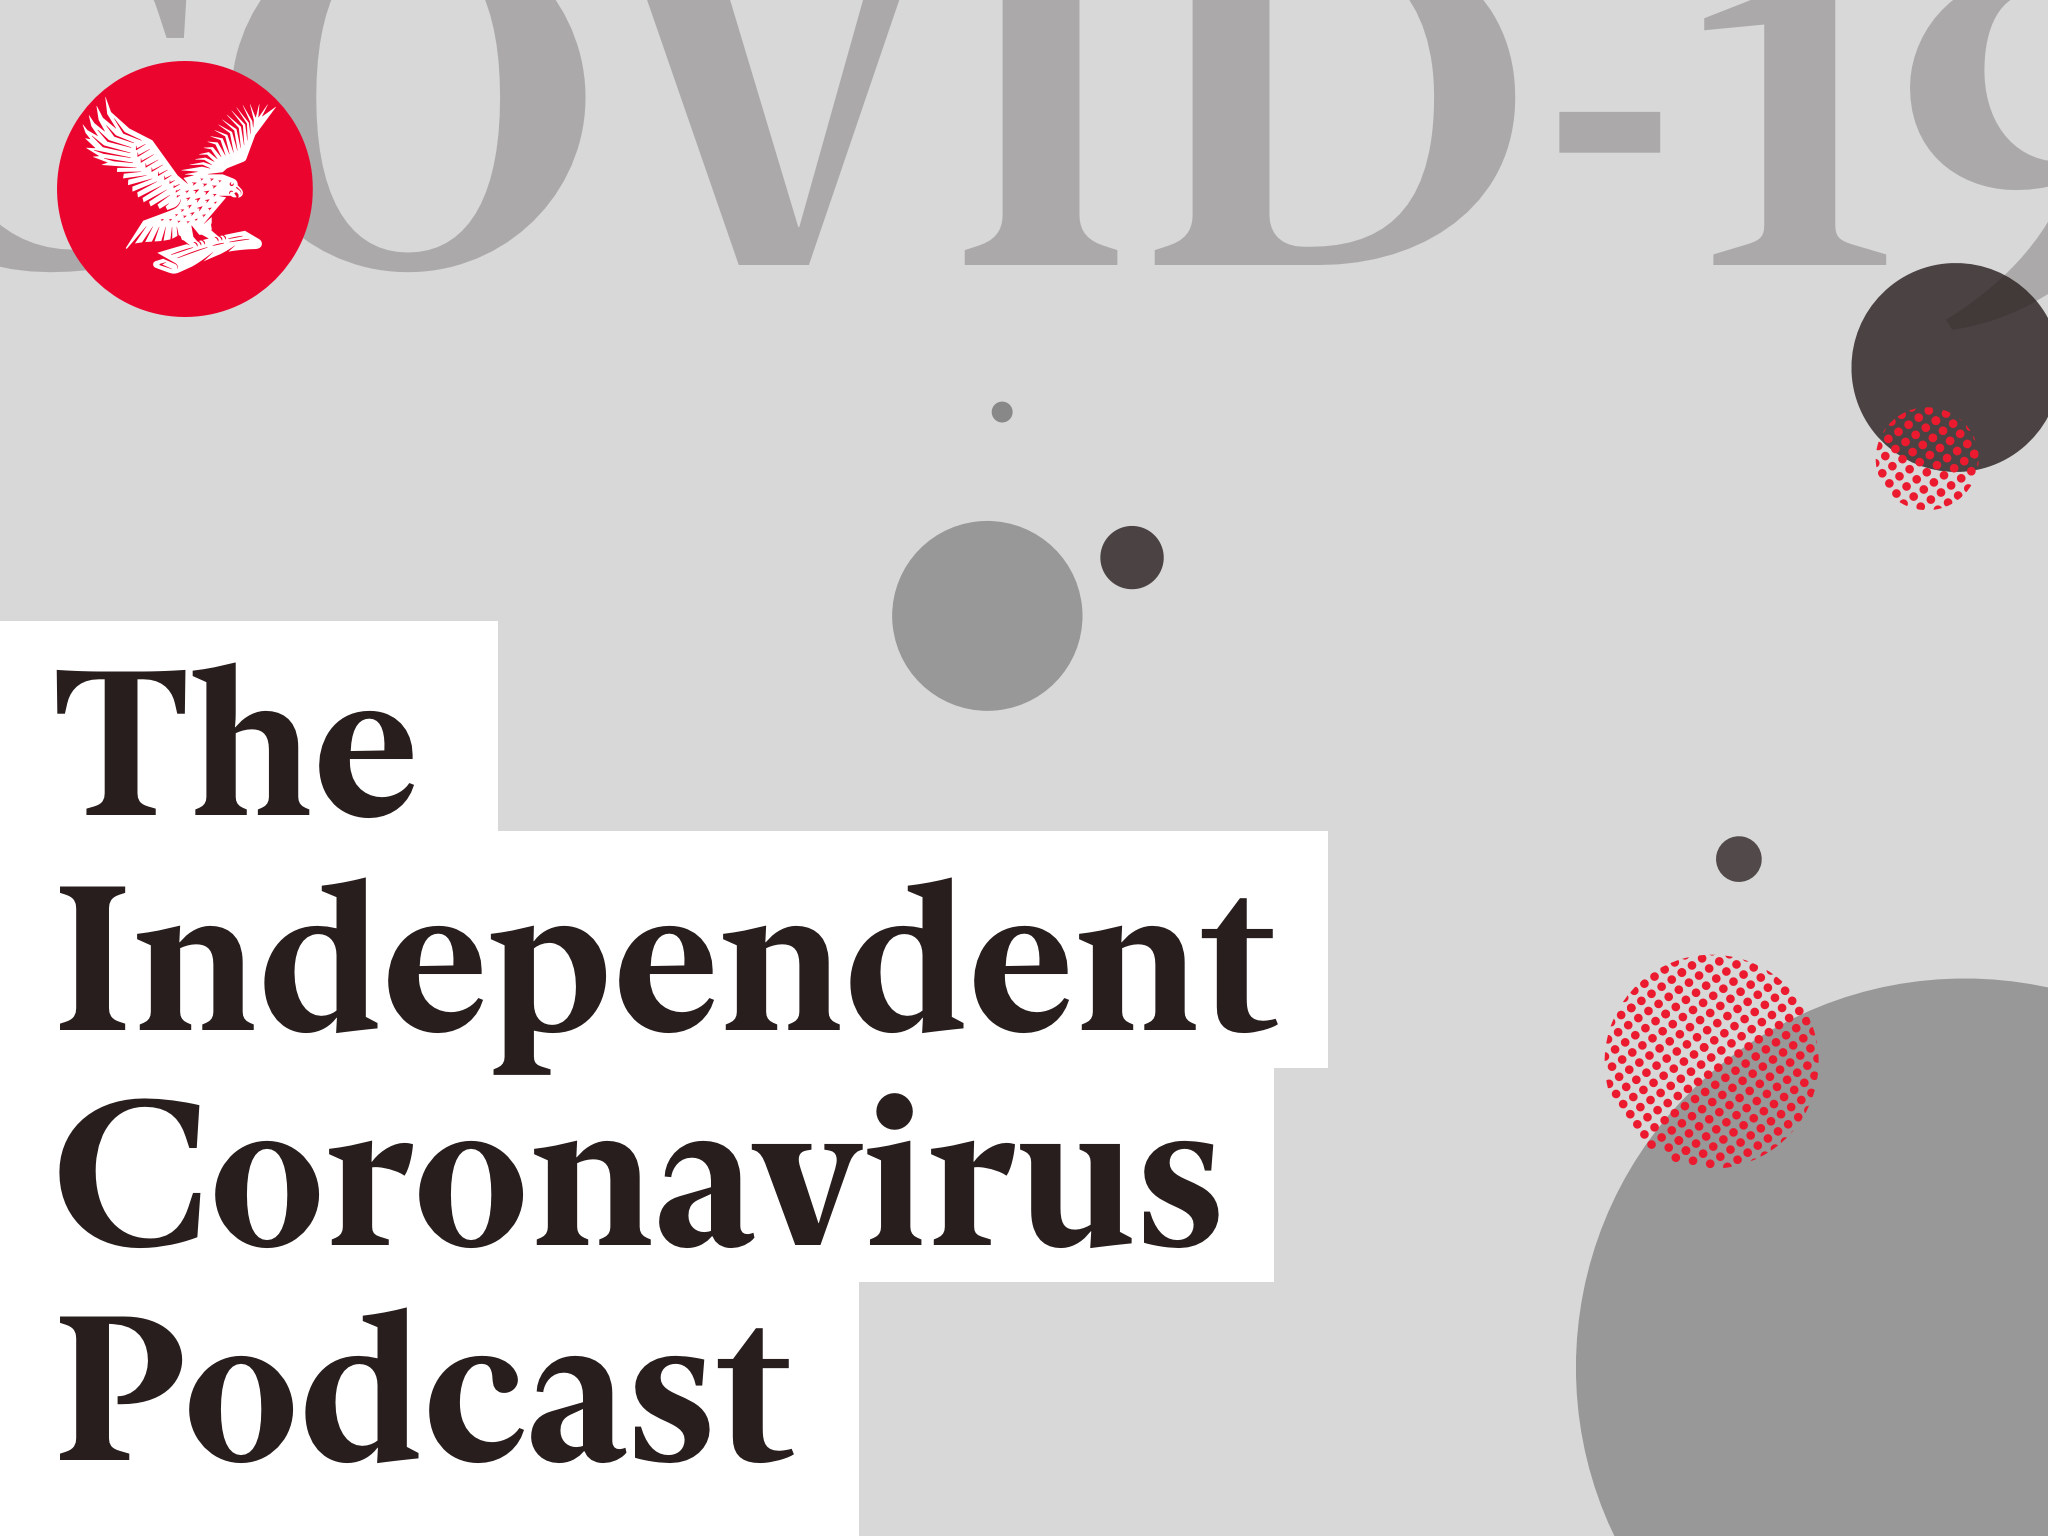 The Independent Coronavirus Podcast: Listen to the latest episode in our Covid-19 series thumbnail